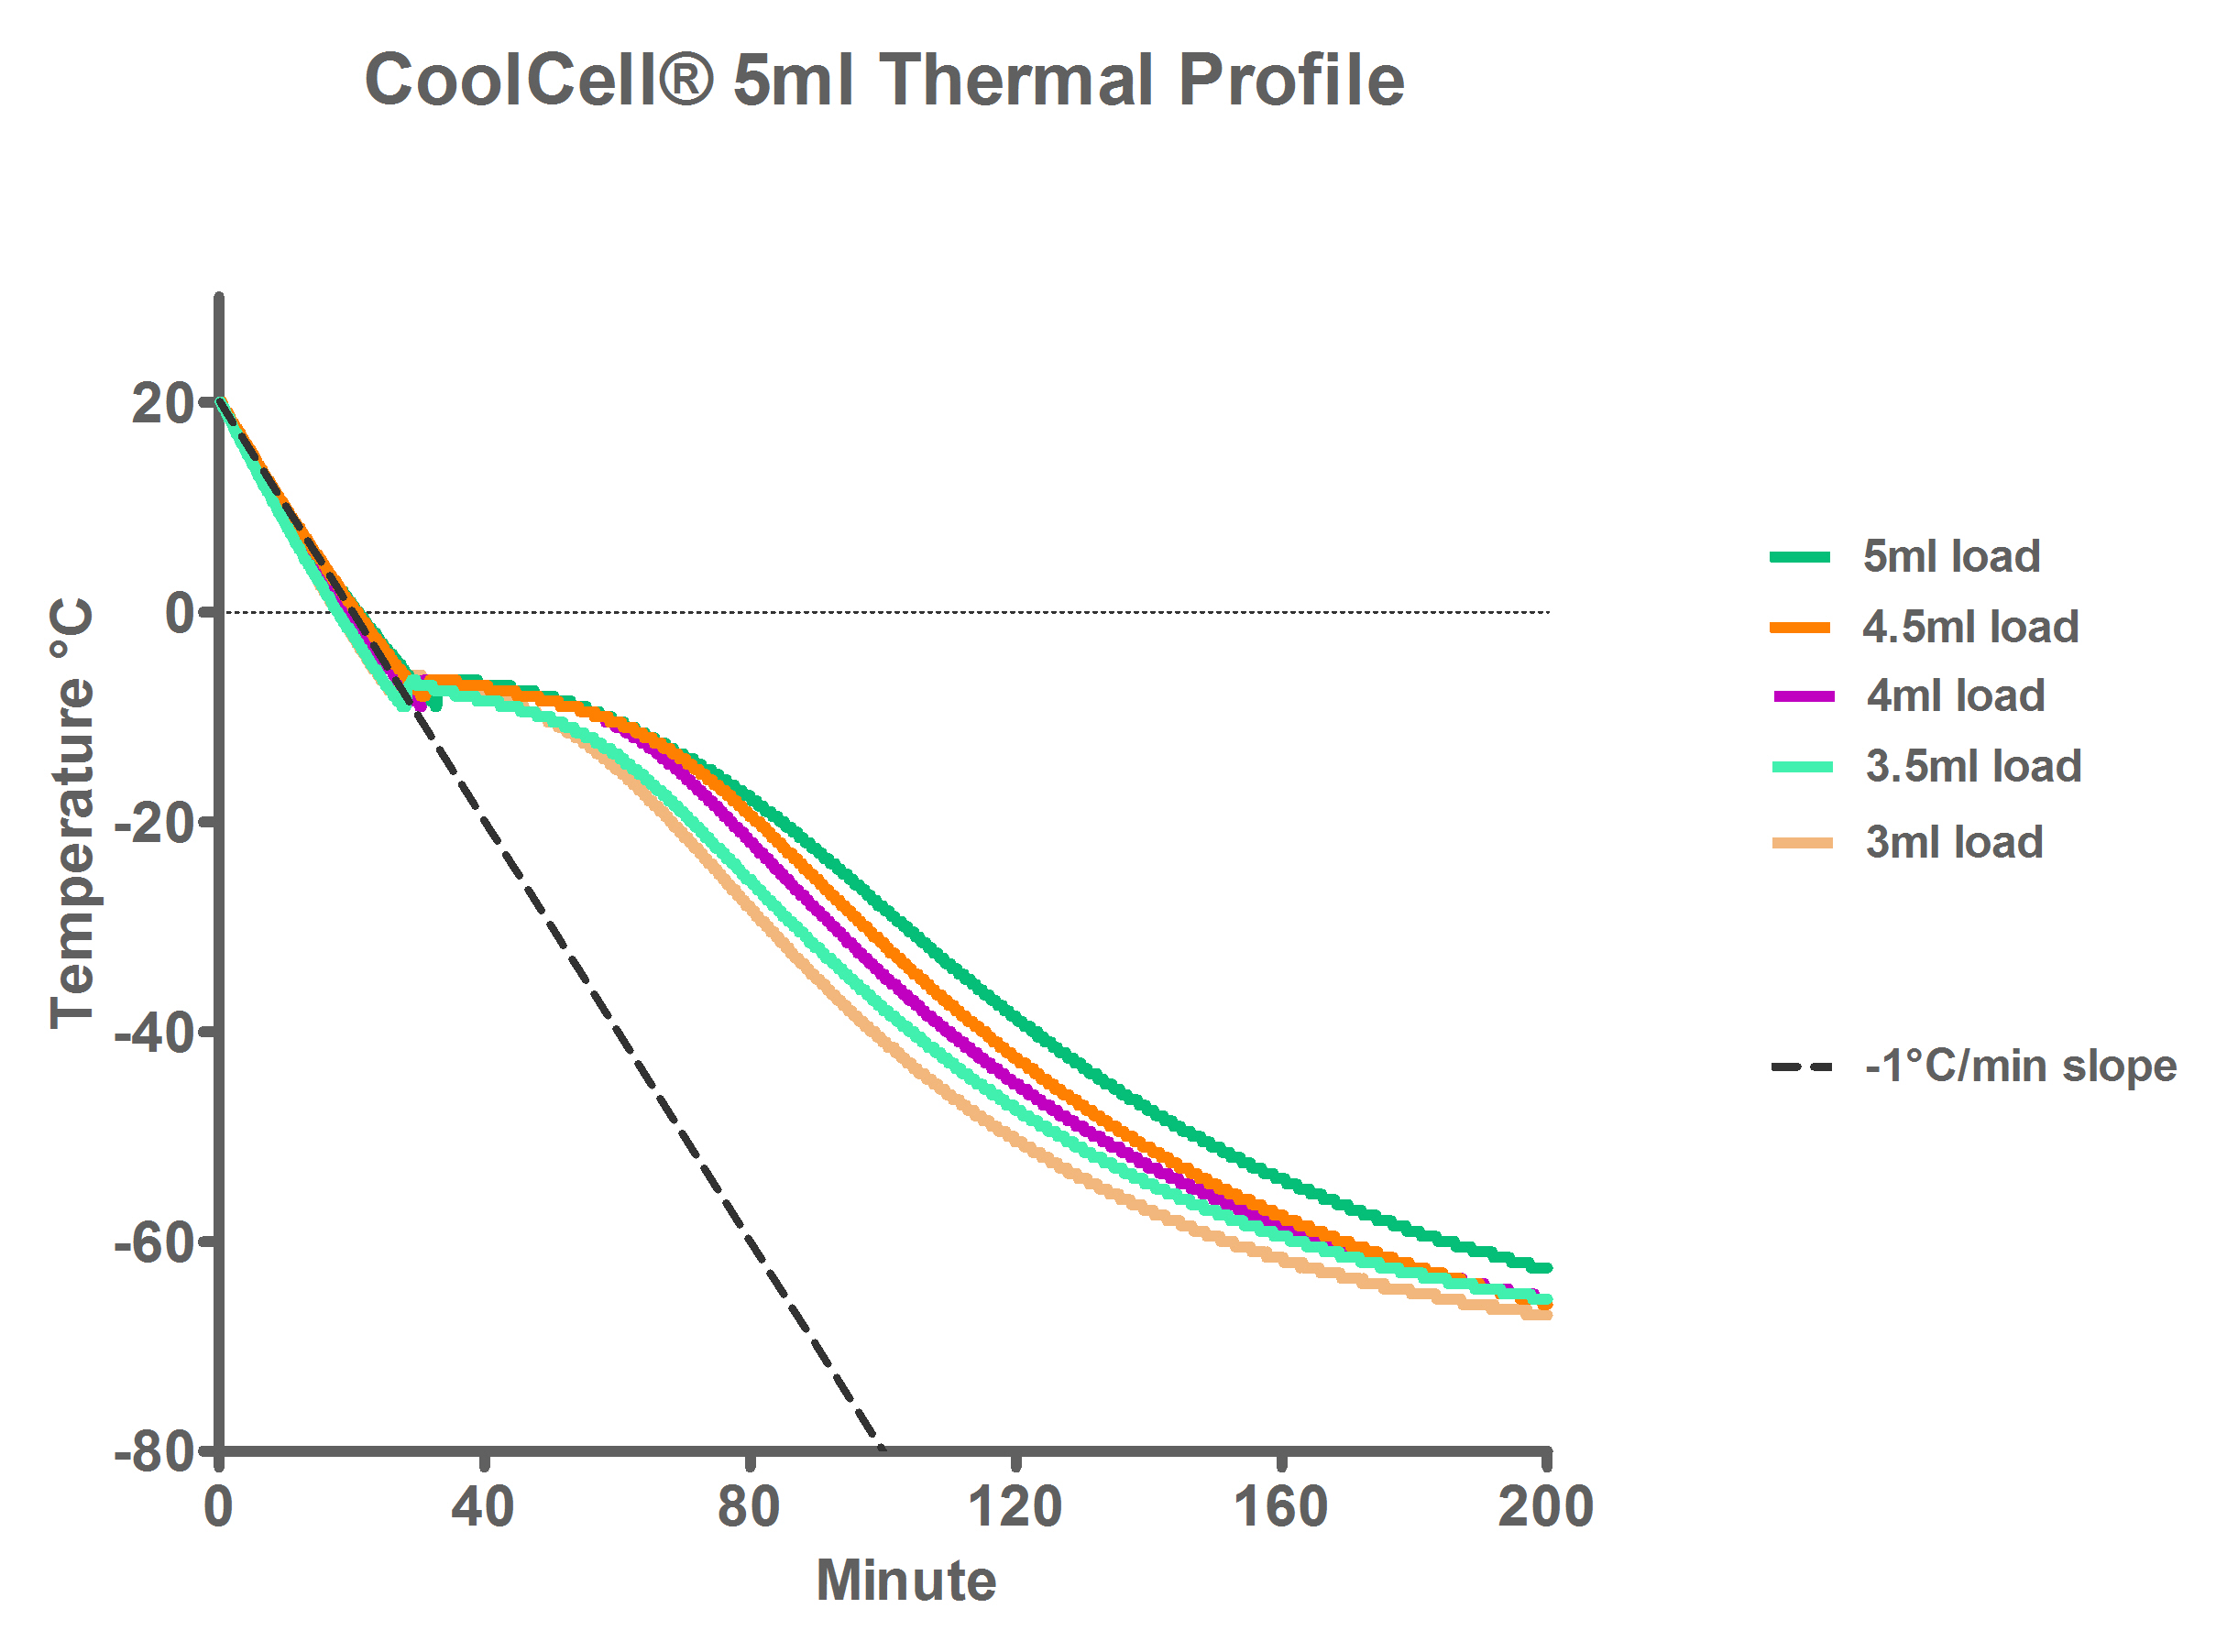 CoolCell 5ml cryopreservation profile